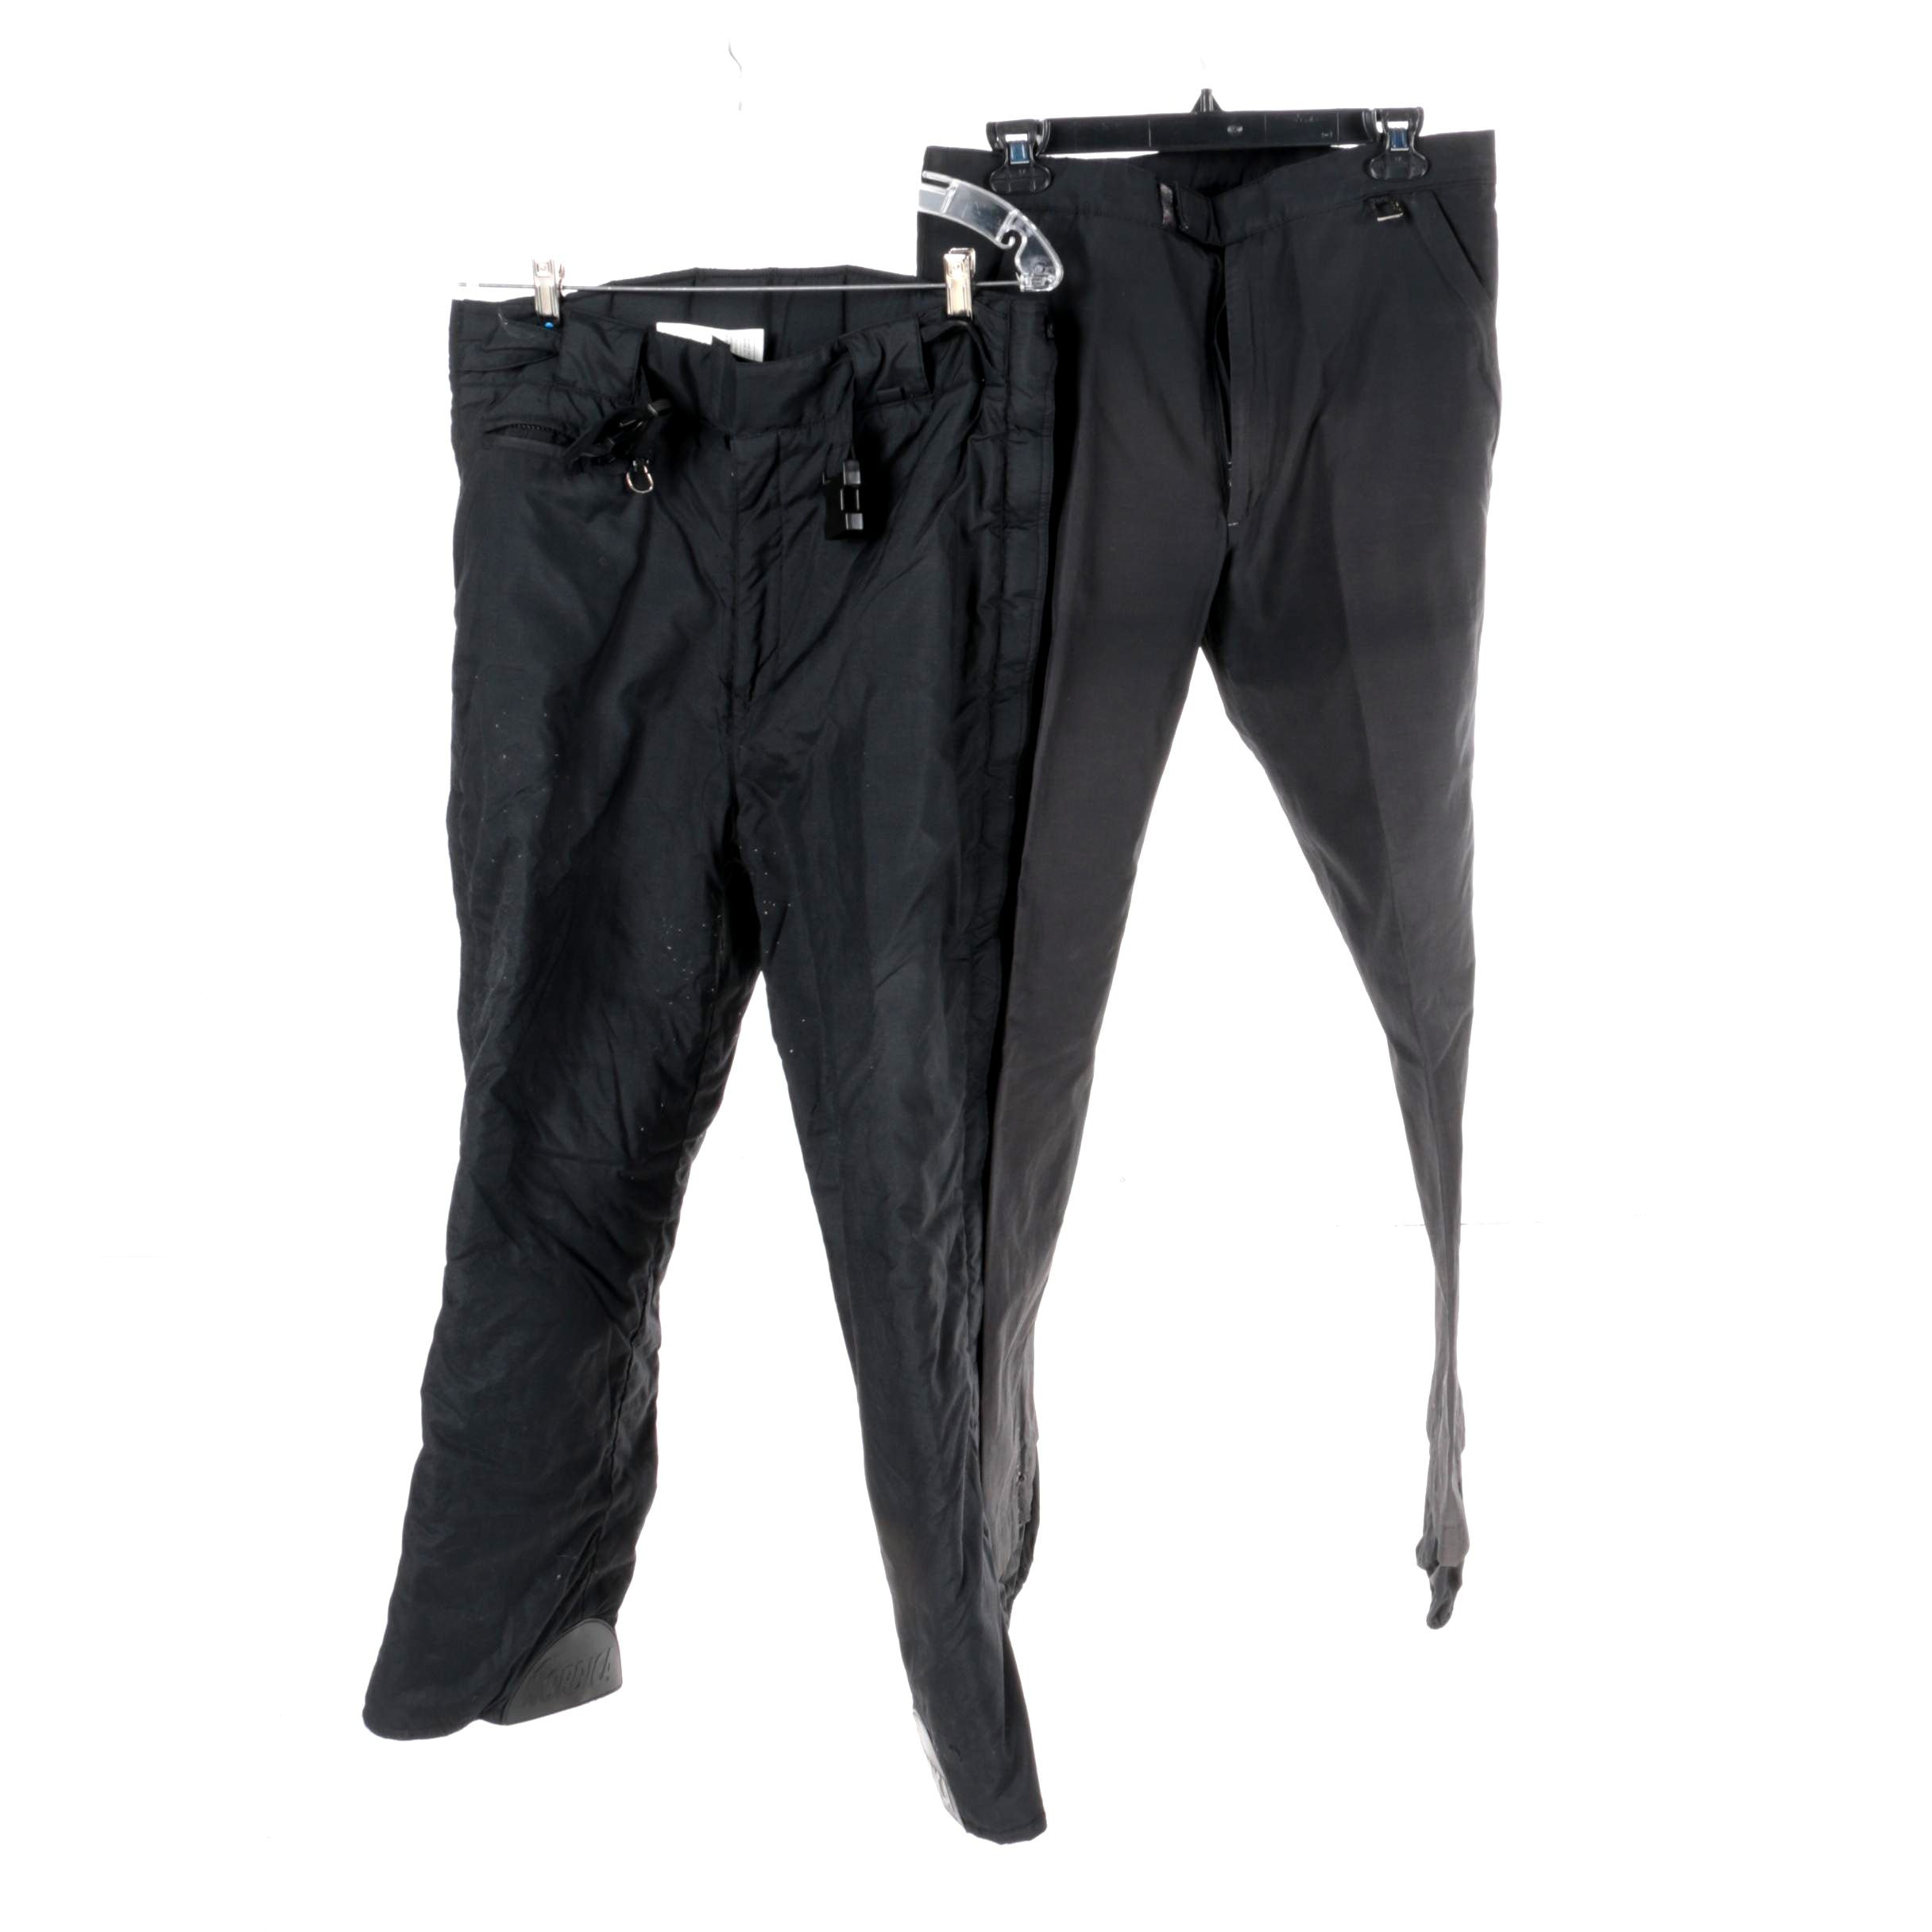 Women's Fera and Nordica Ski Pants